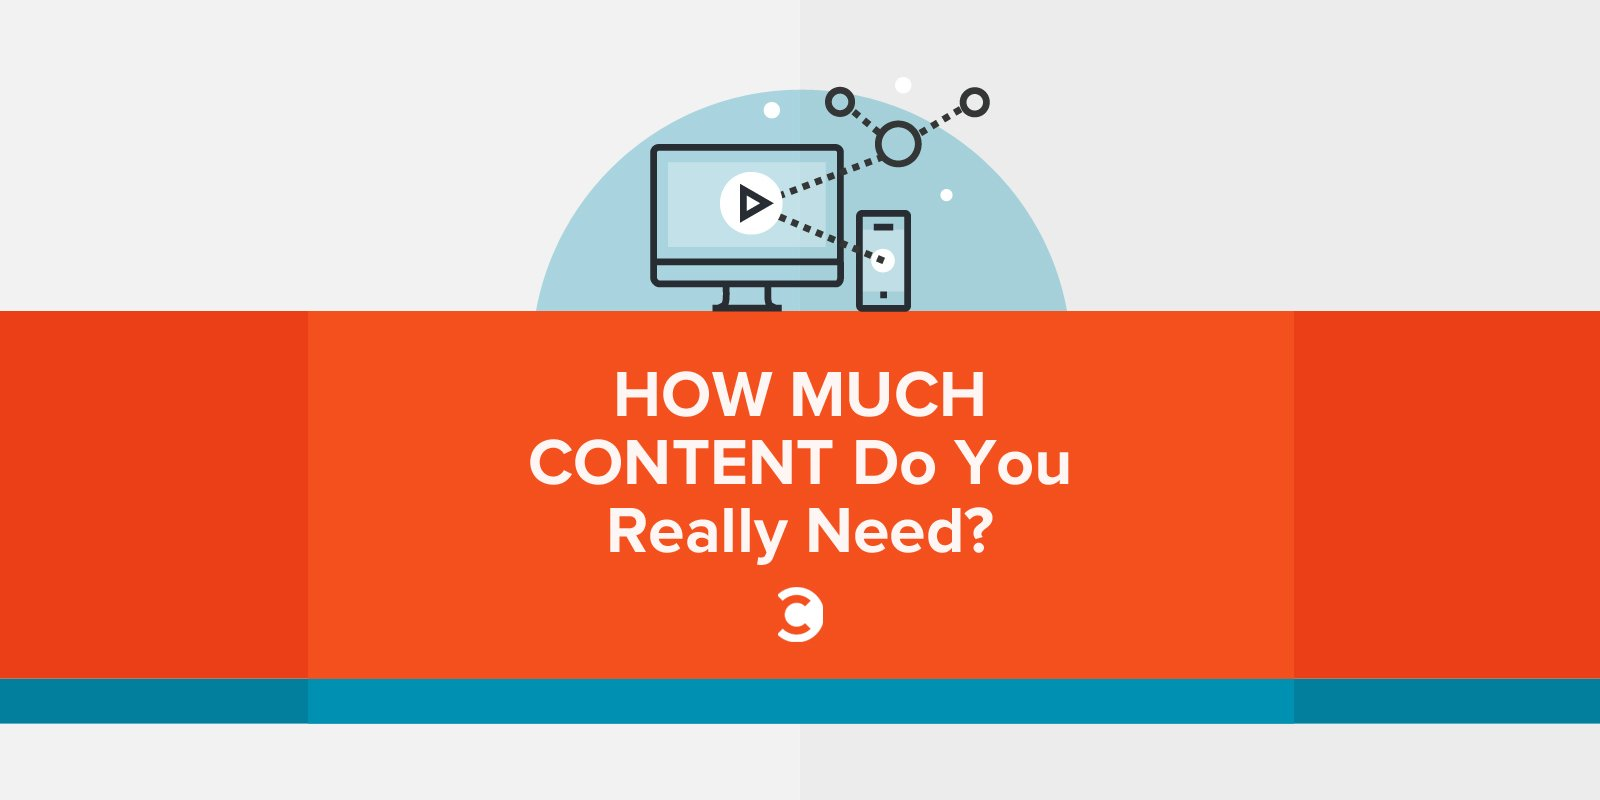 How Much Content Do You Really Need